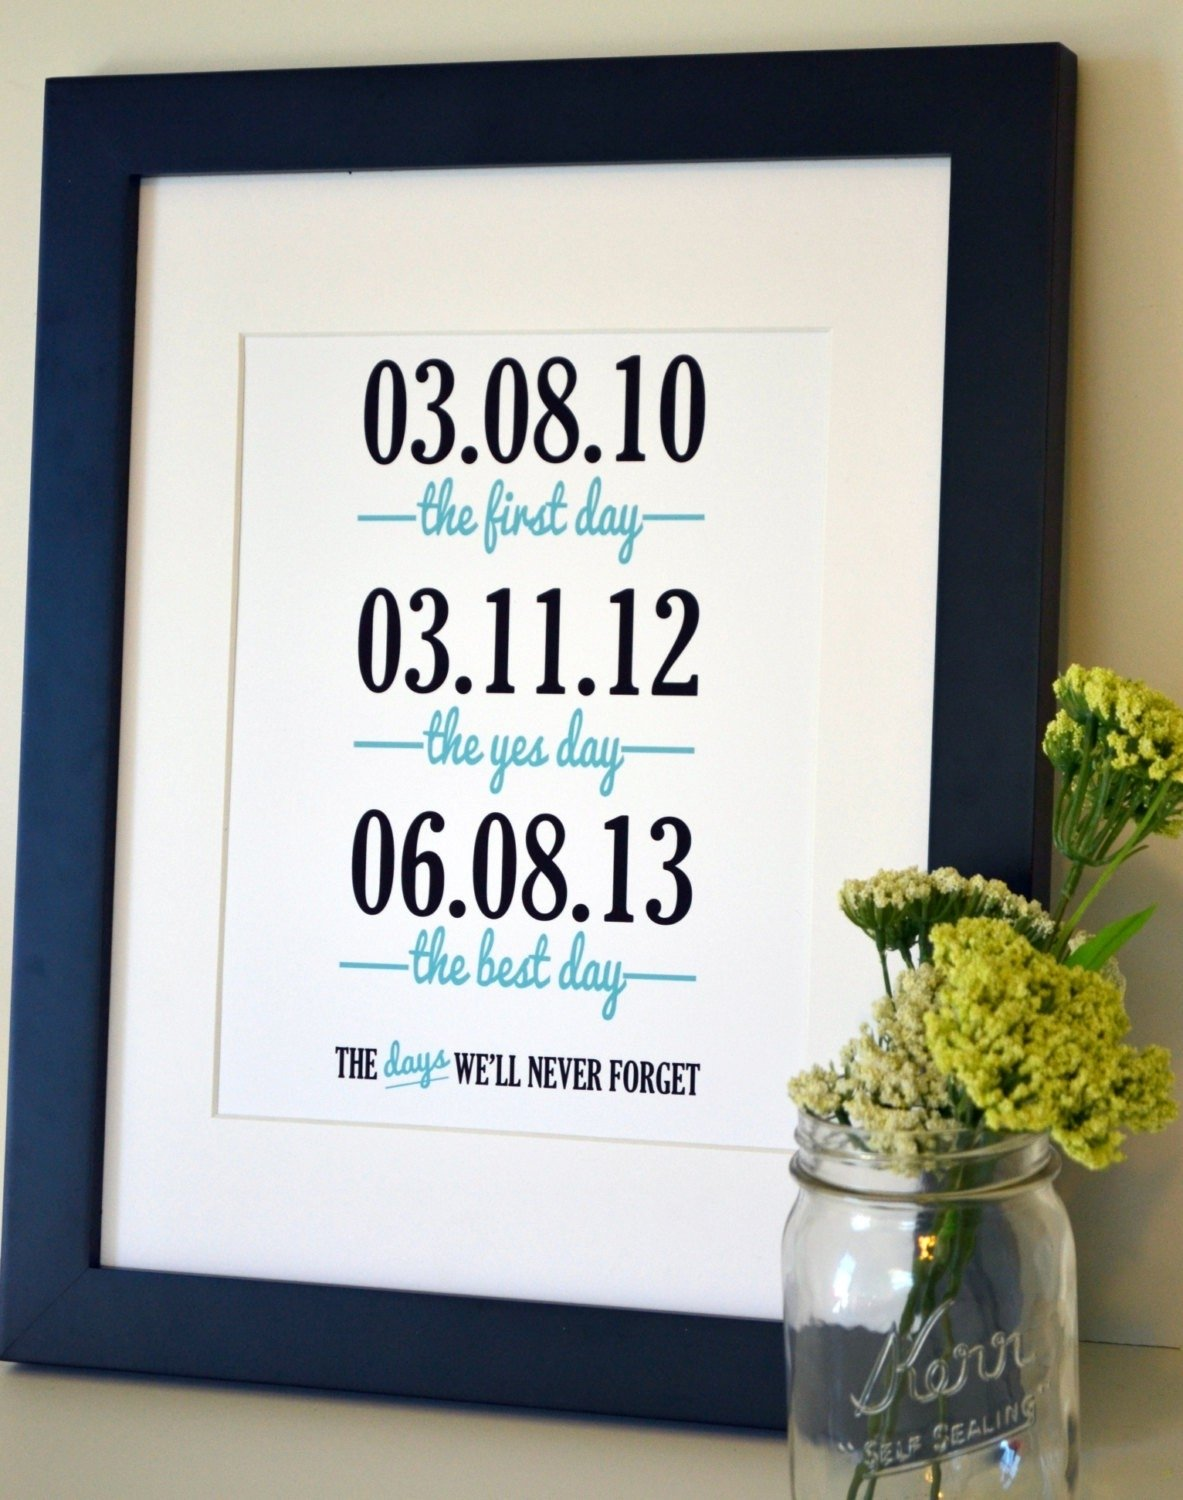 10 Attractive Second Wedding Anniversary Gift Ideas For Her second wedding anniversary gift ideas for husband elegant perfect 2021